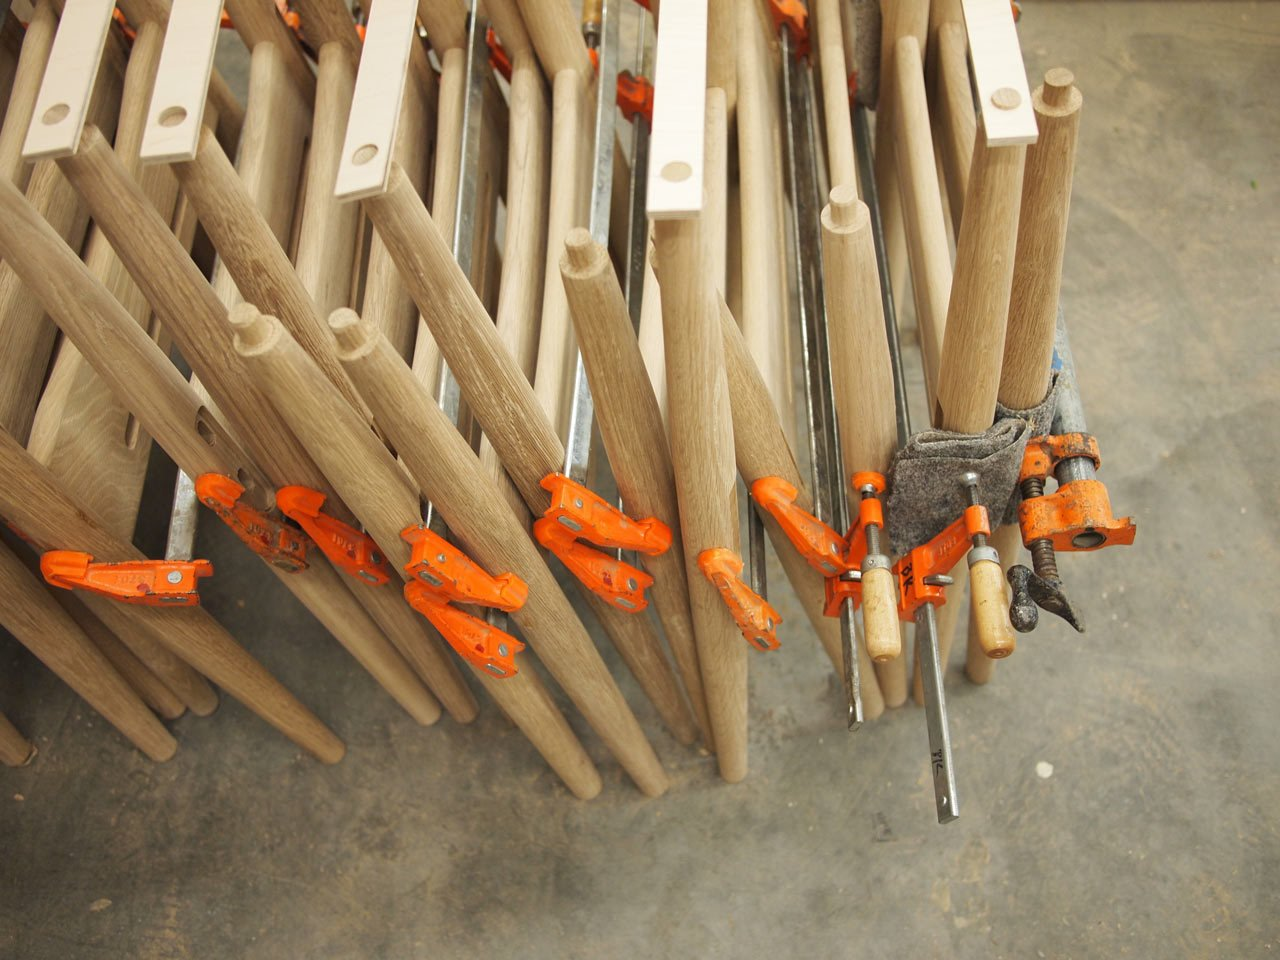 Photo 7 of 15 in How Phloem Studio Makes their Captain's Chair